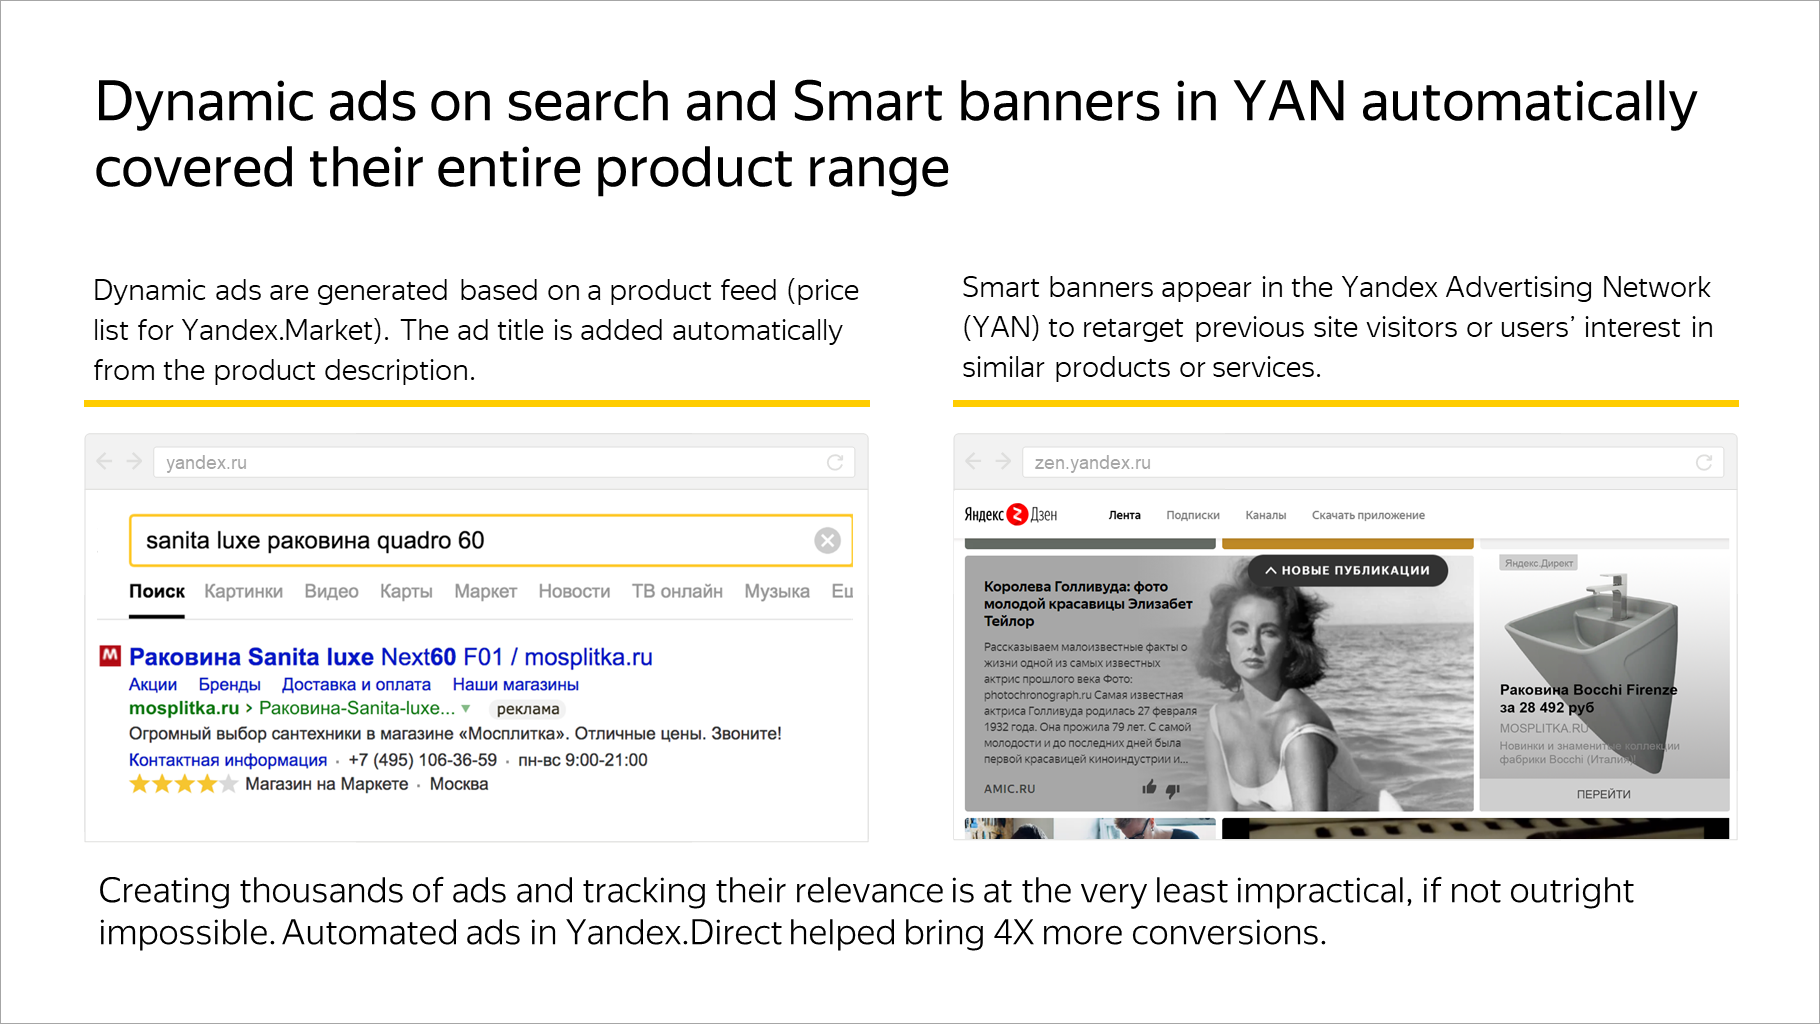 Dynamic ads on search and Smart banners in YAN automatically covered their entire product range